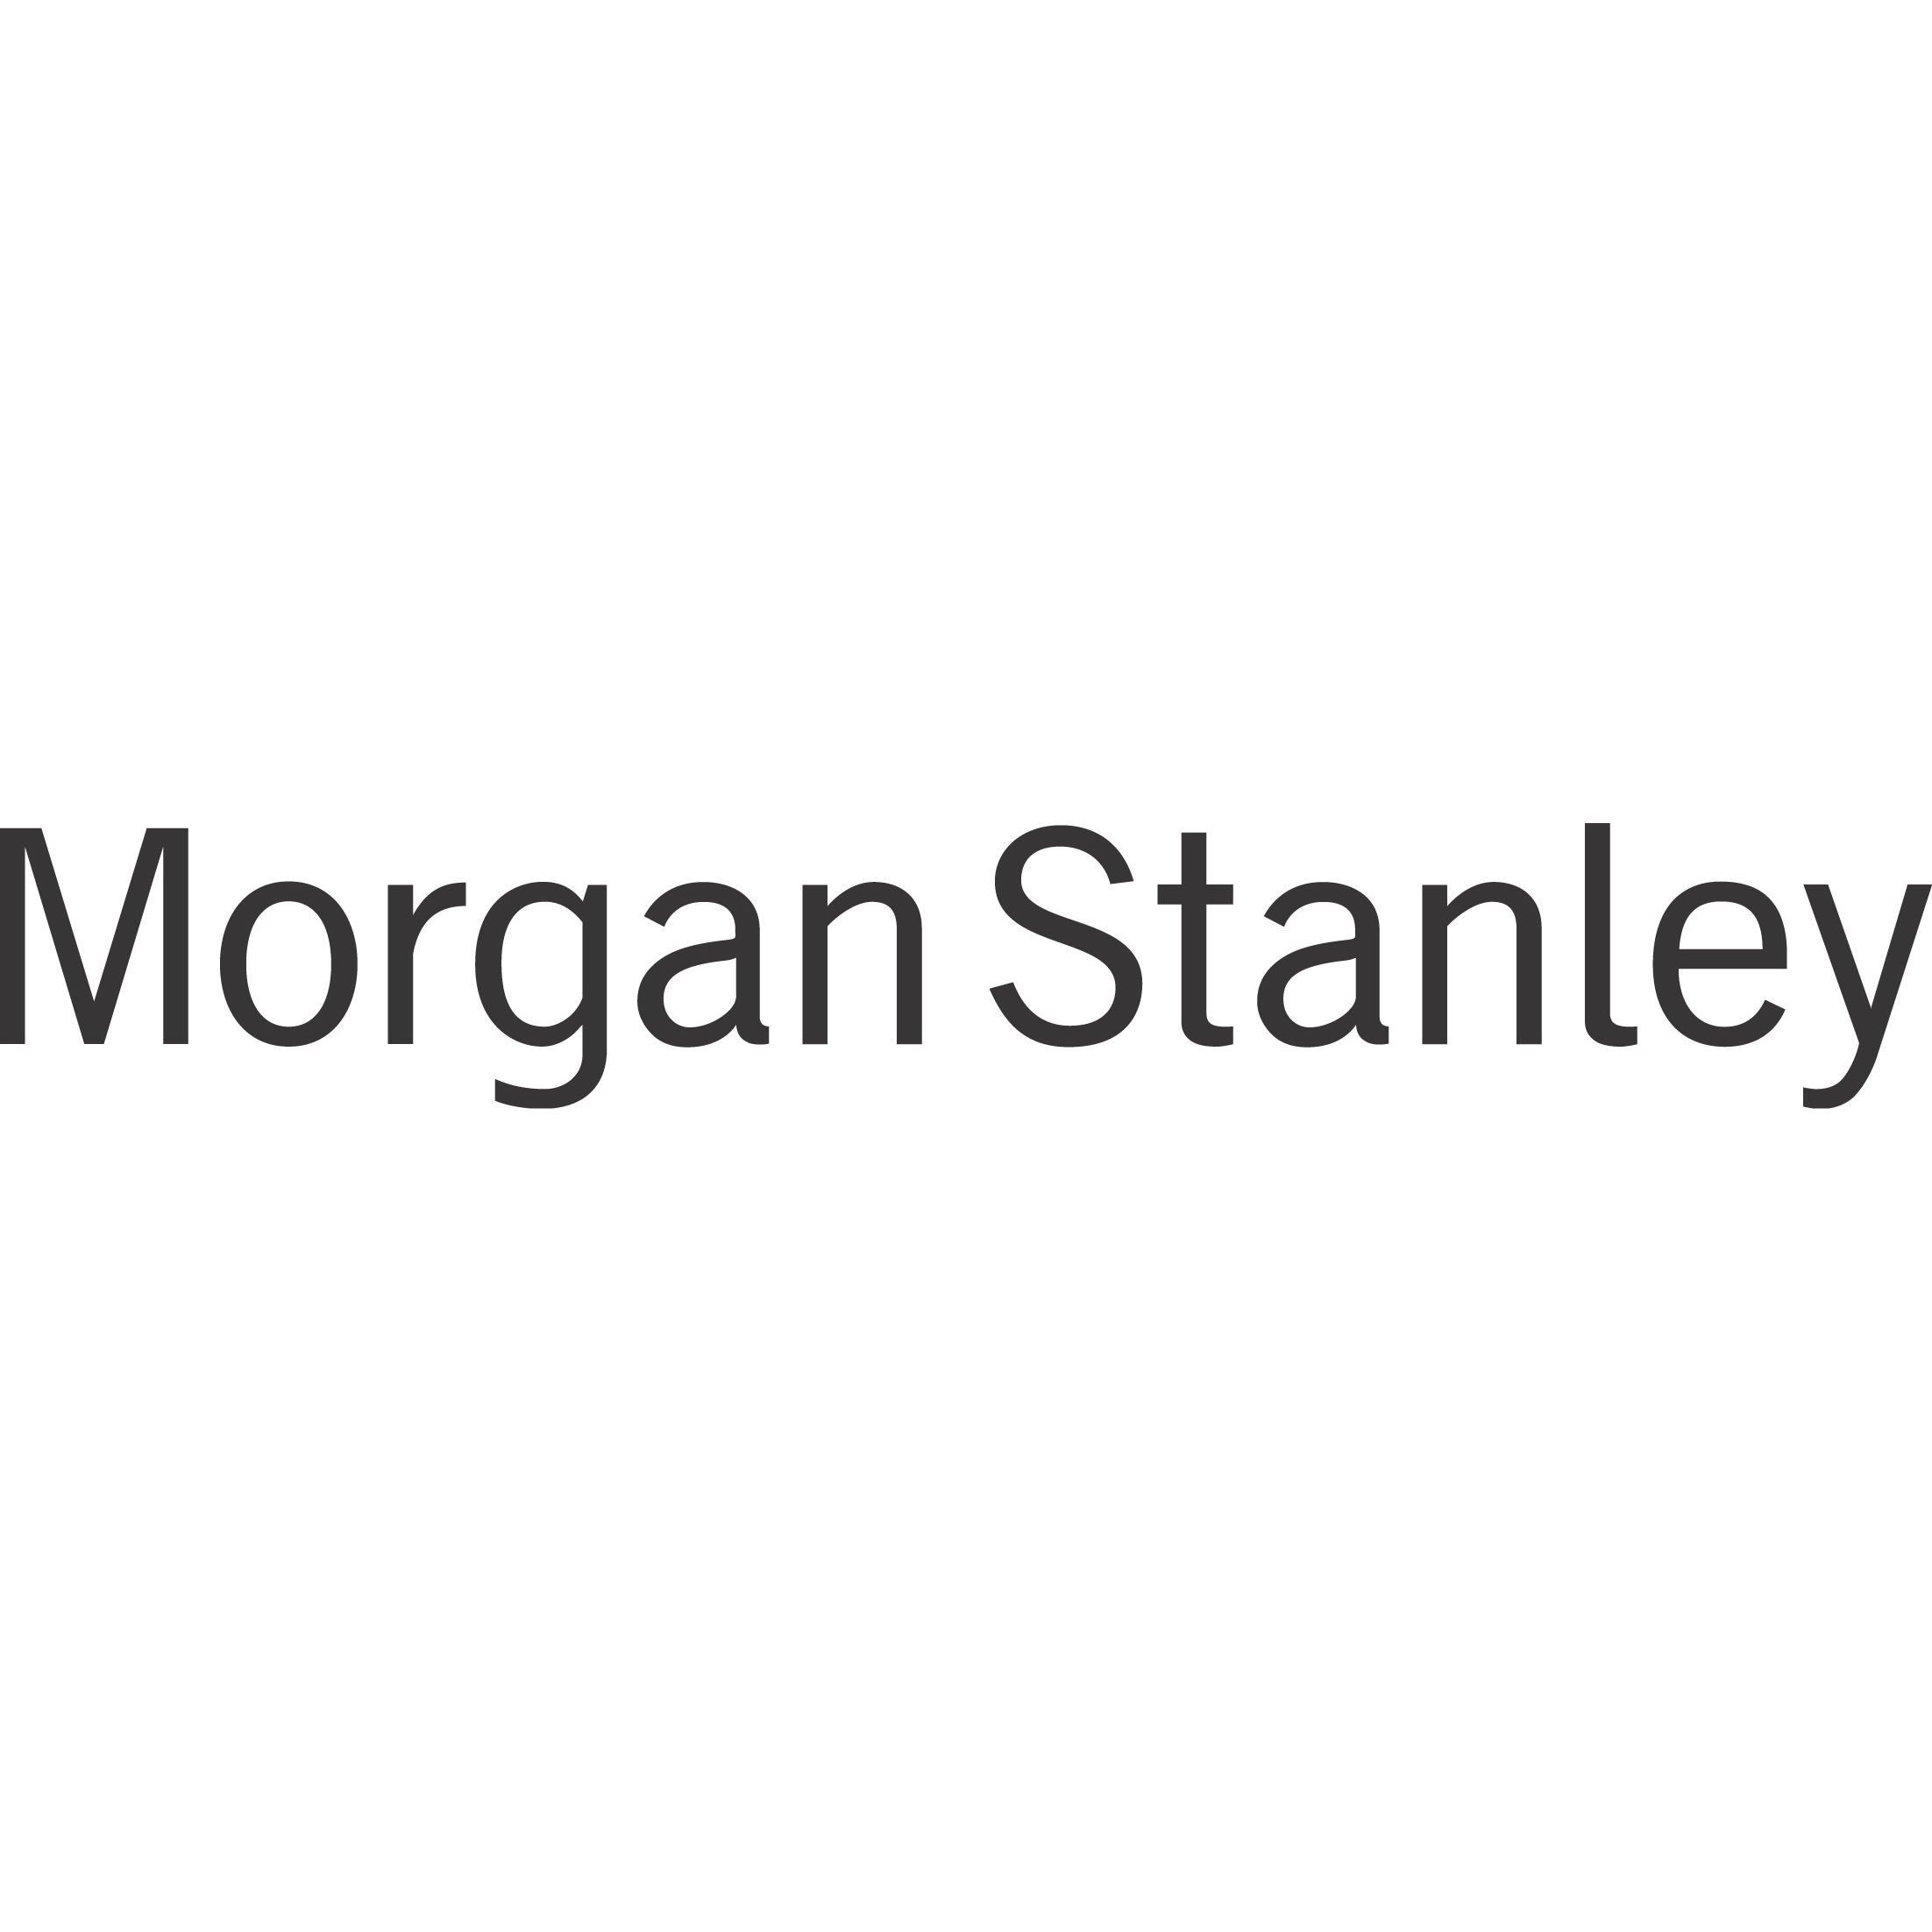 Adam M Tzagournis - Morgan Stanley | Financial Advisor in Dublin,Ohio